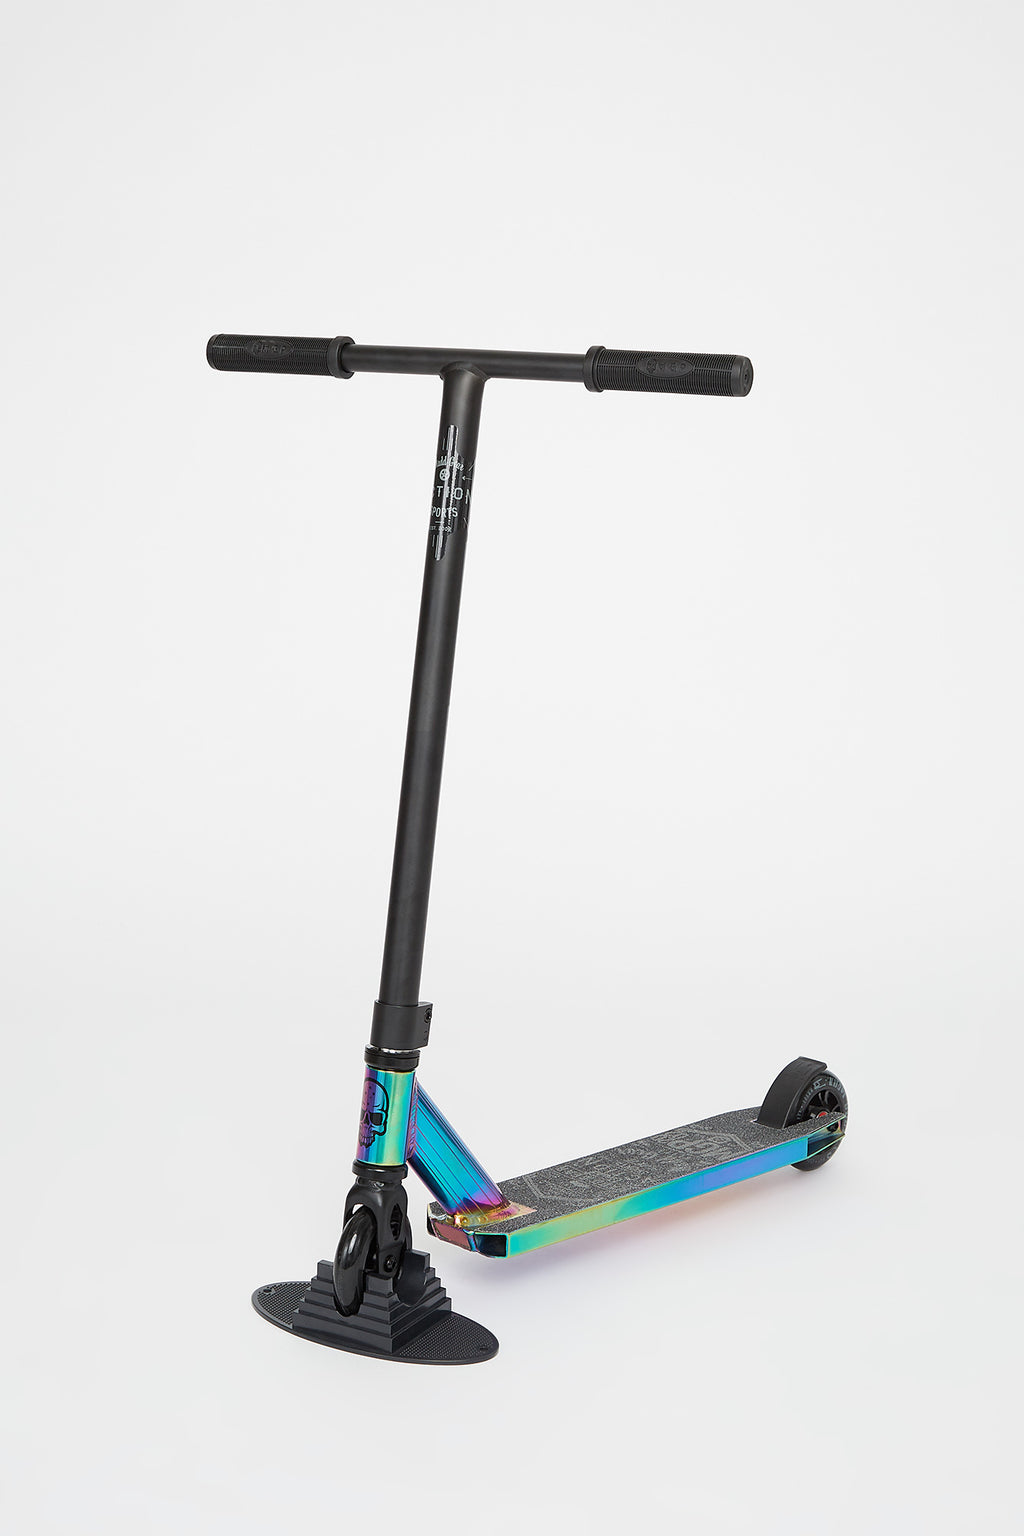 Madd Gear Carve Elite Oil Slick Scooter